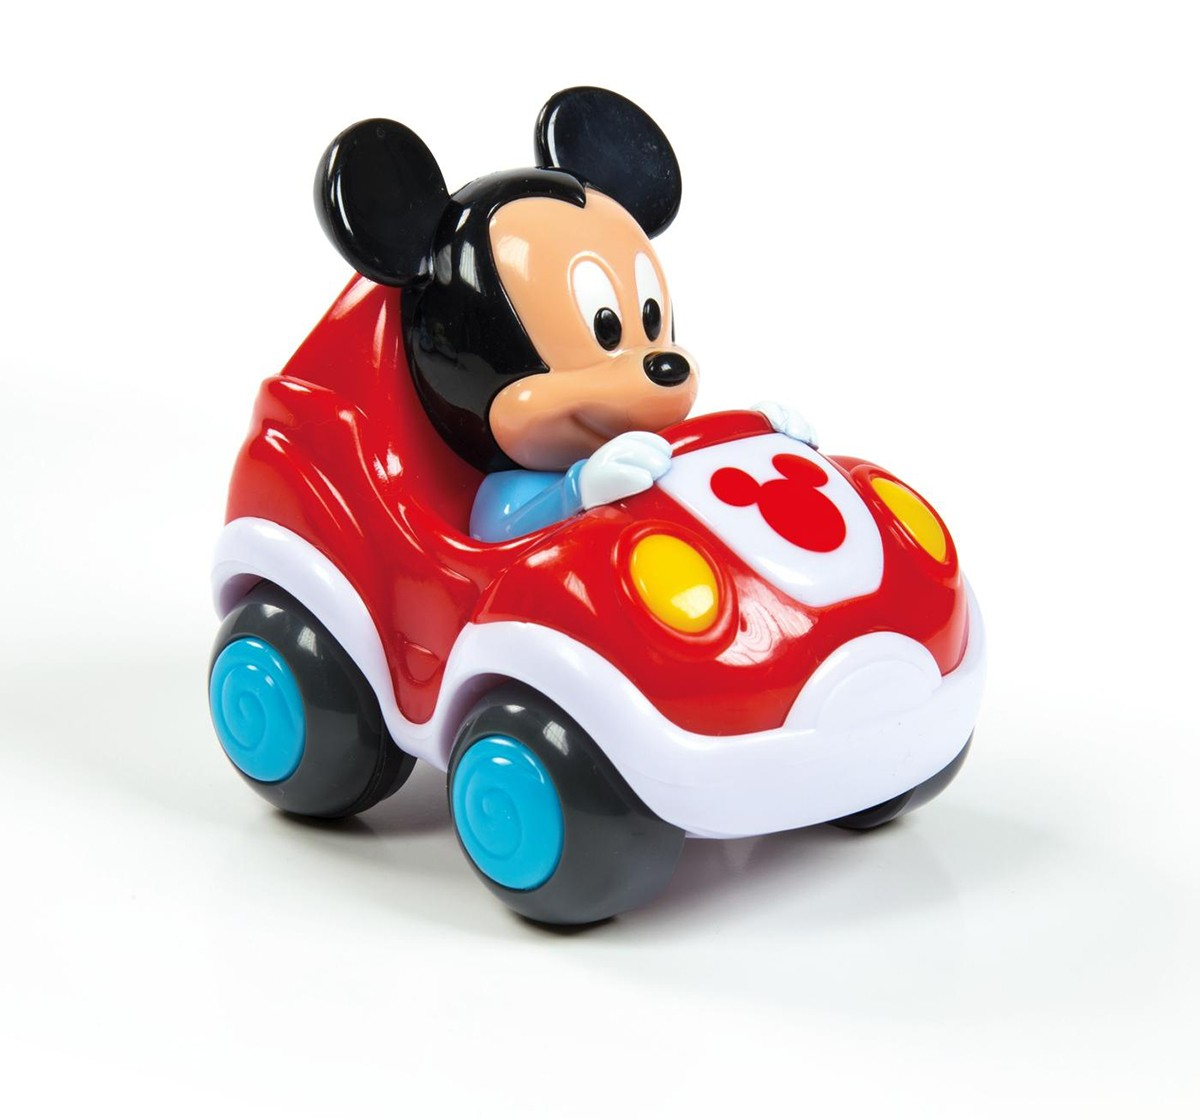 Disney Baby Pull Back Cars Activity Toy for Kids age 12M+